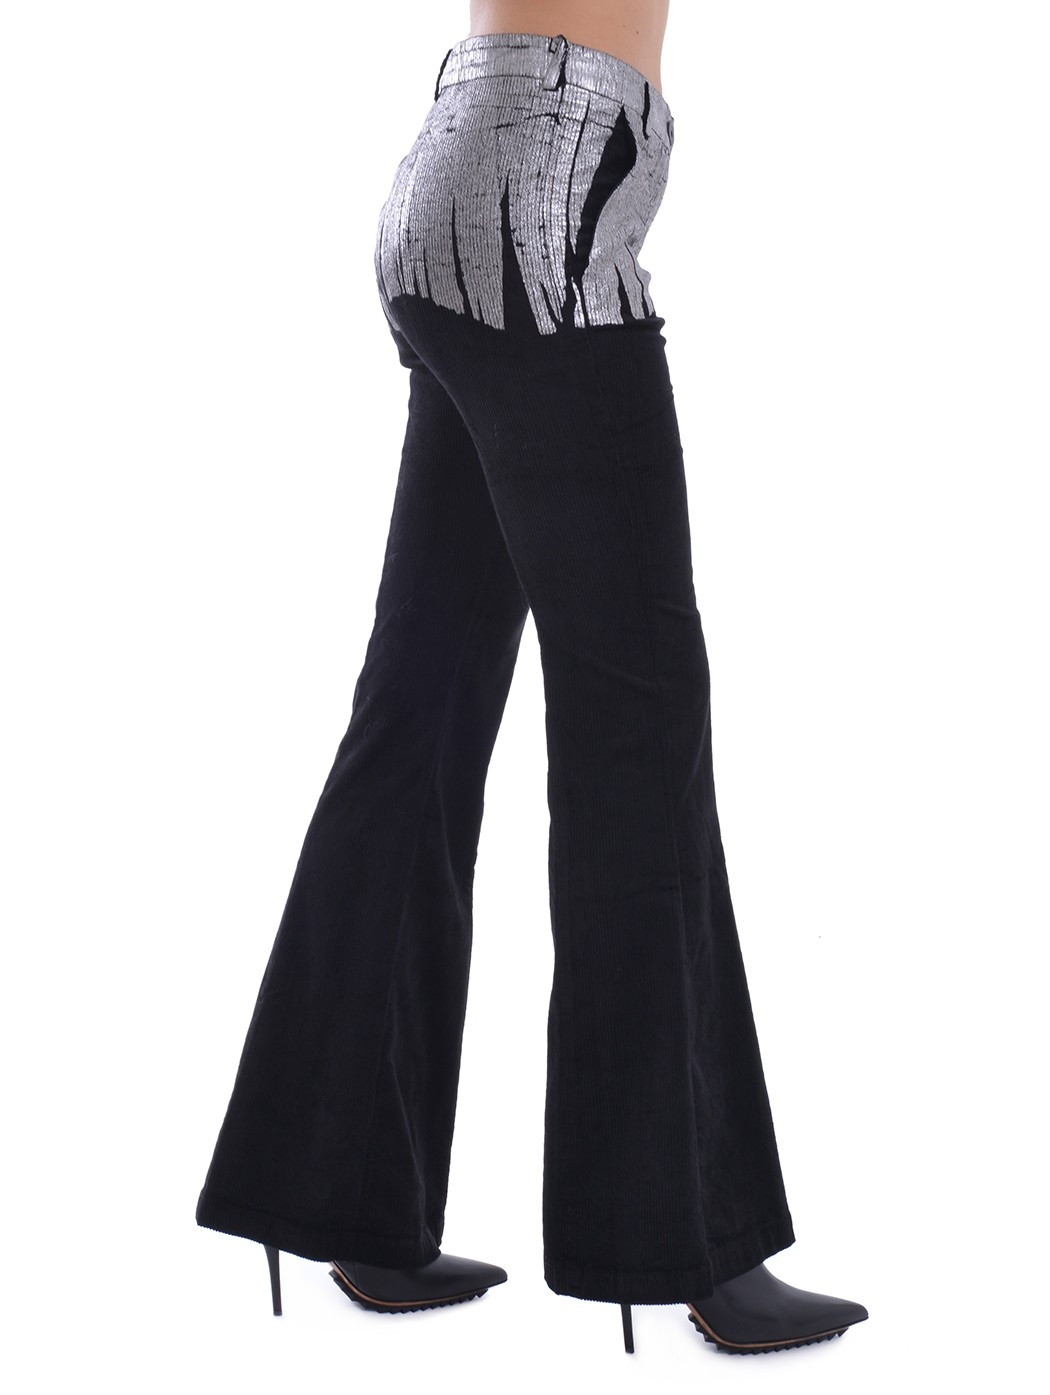 8 PM TROUSERS JANE-009